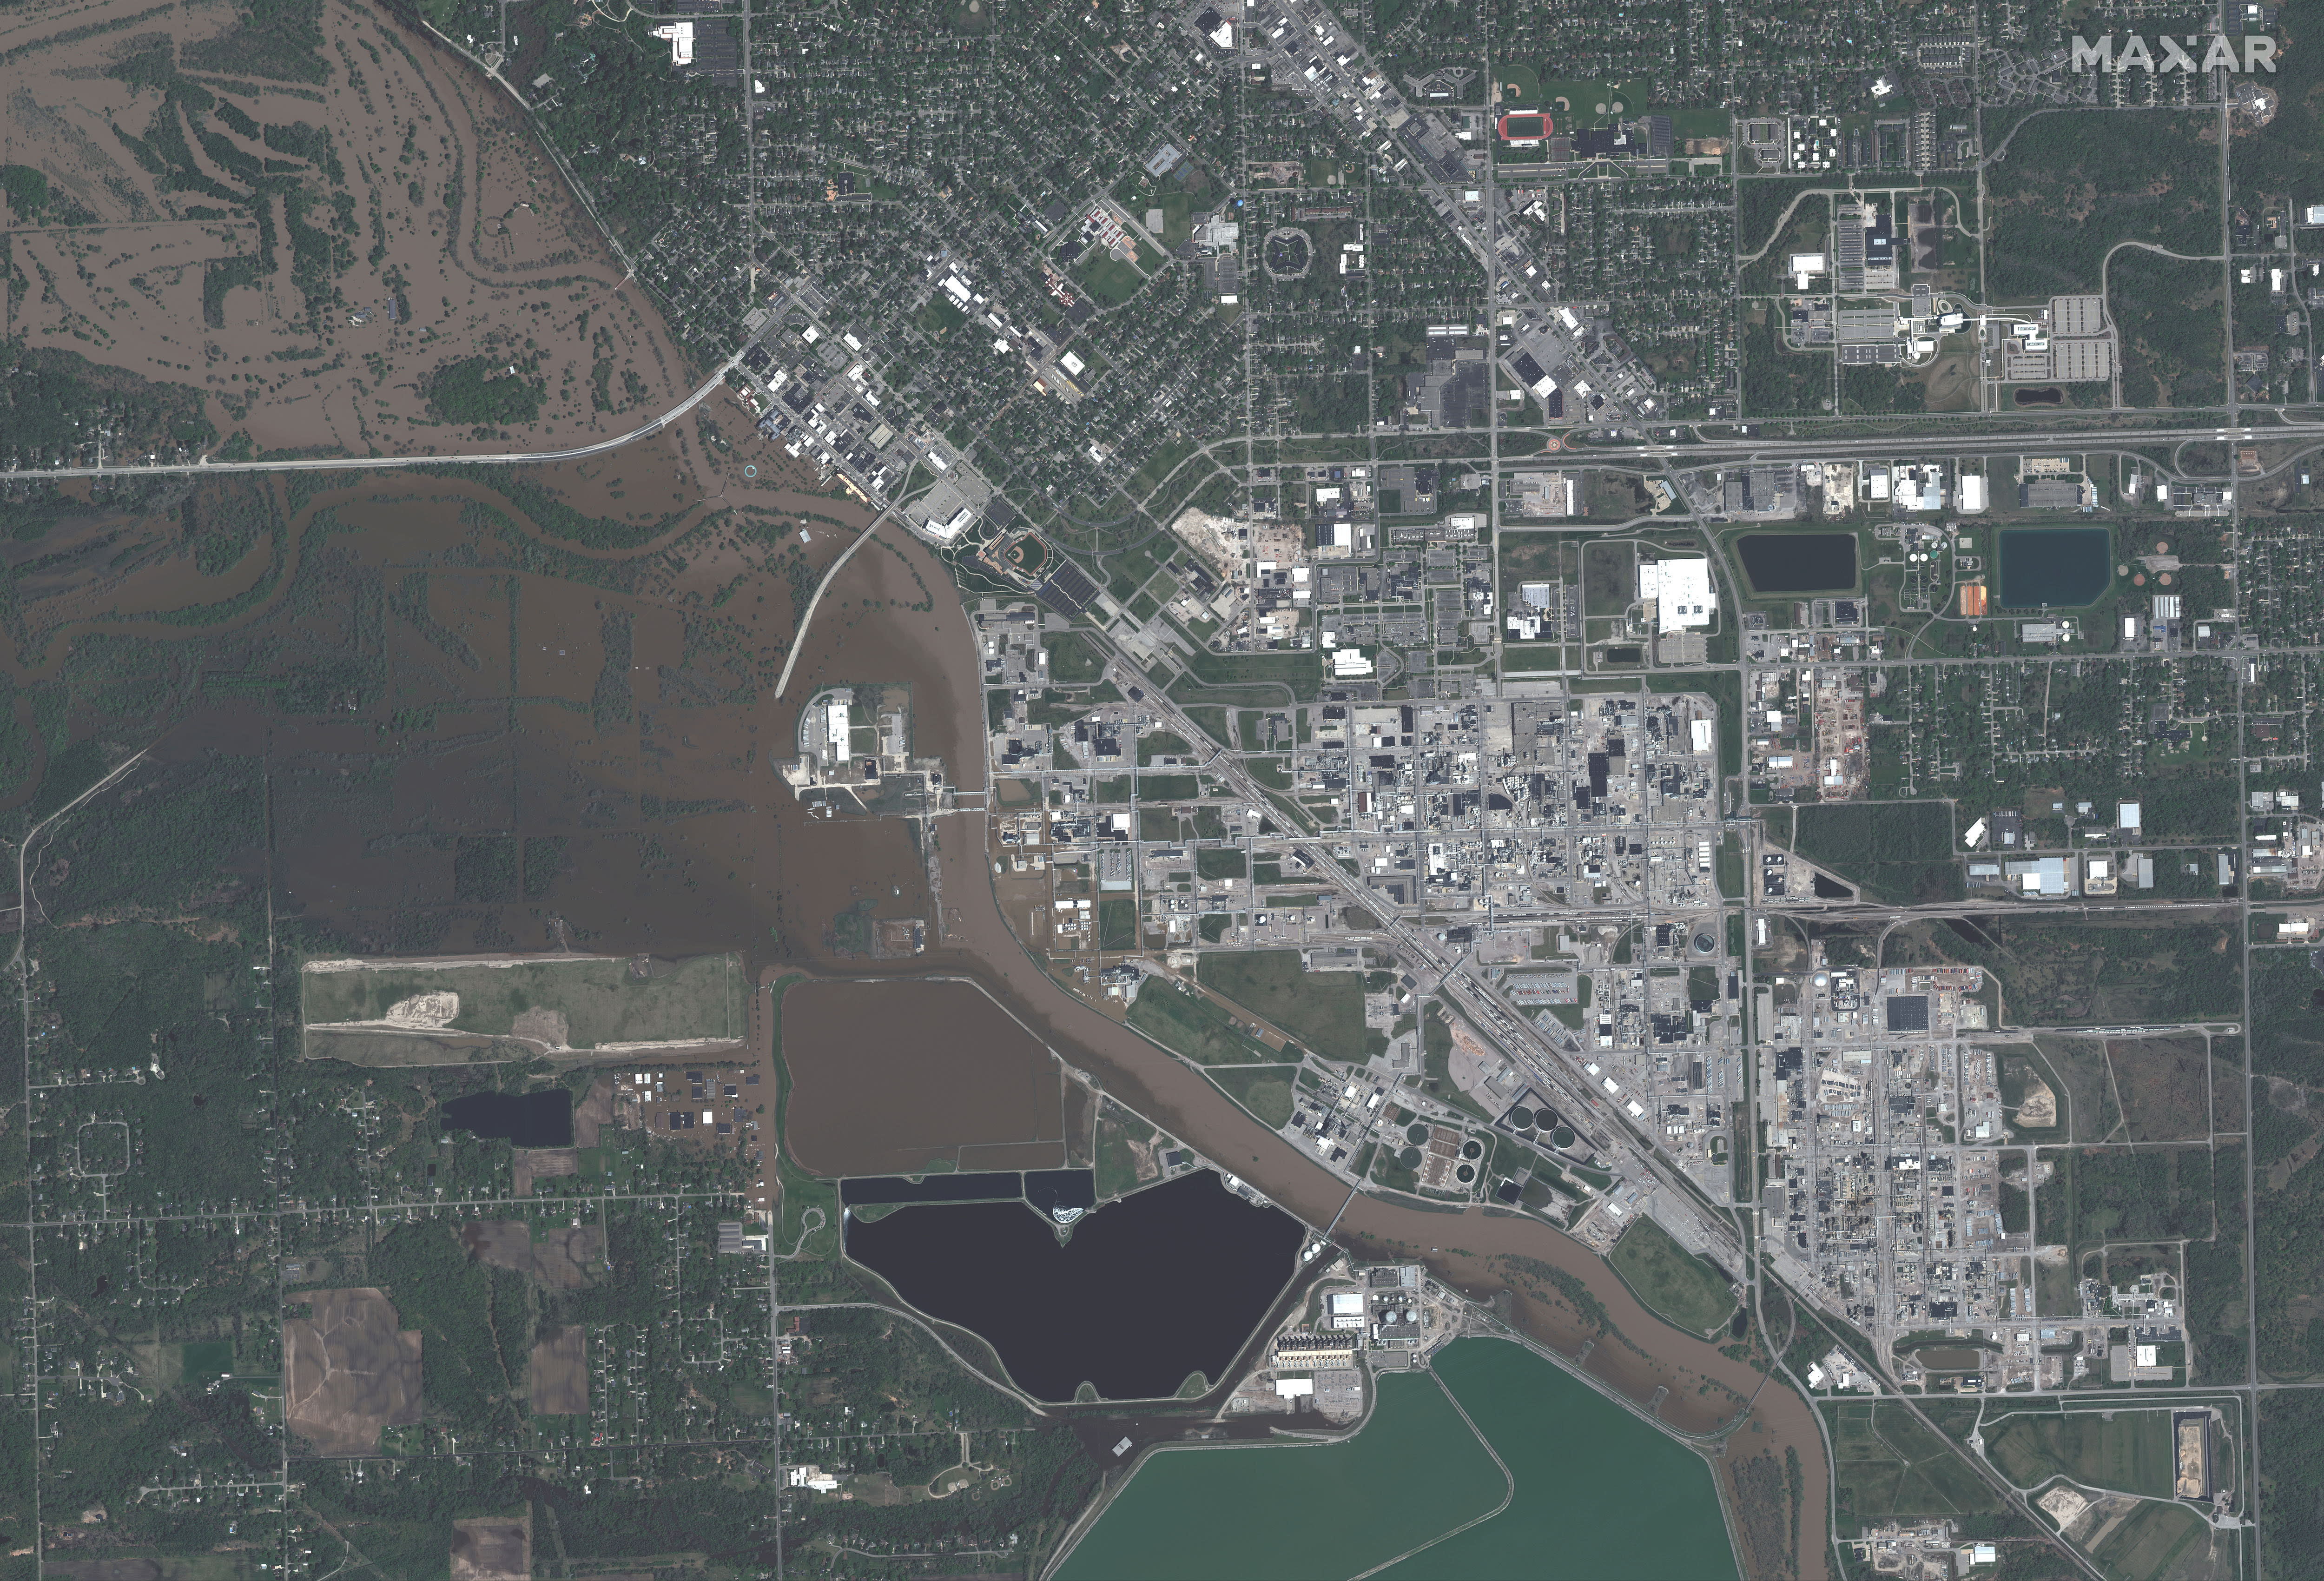 This photo provided by Maxar Technologies shows an overview of Midland, Mich., Thursday, May 21, 2020, with floodwaters along the Tittabawassee River. (Maxar Technologies via AP)